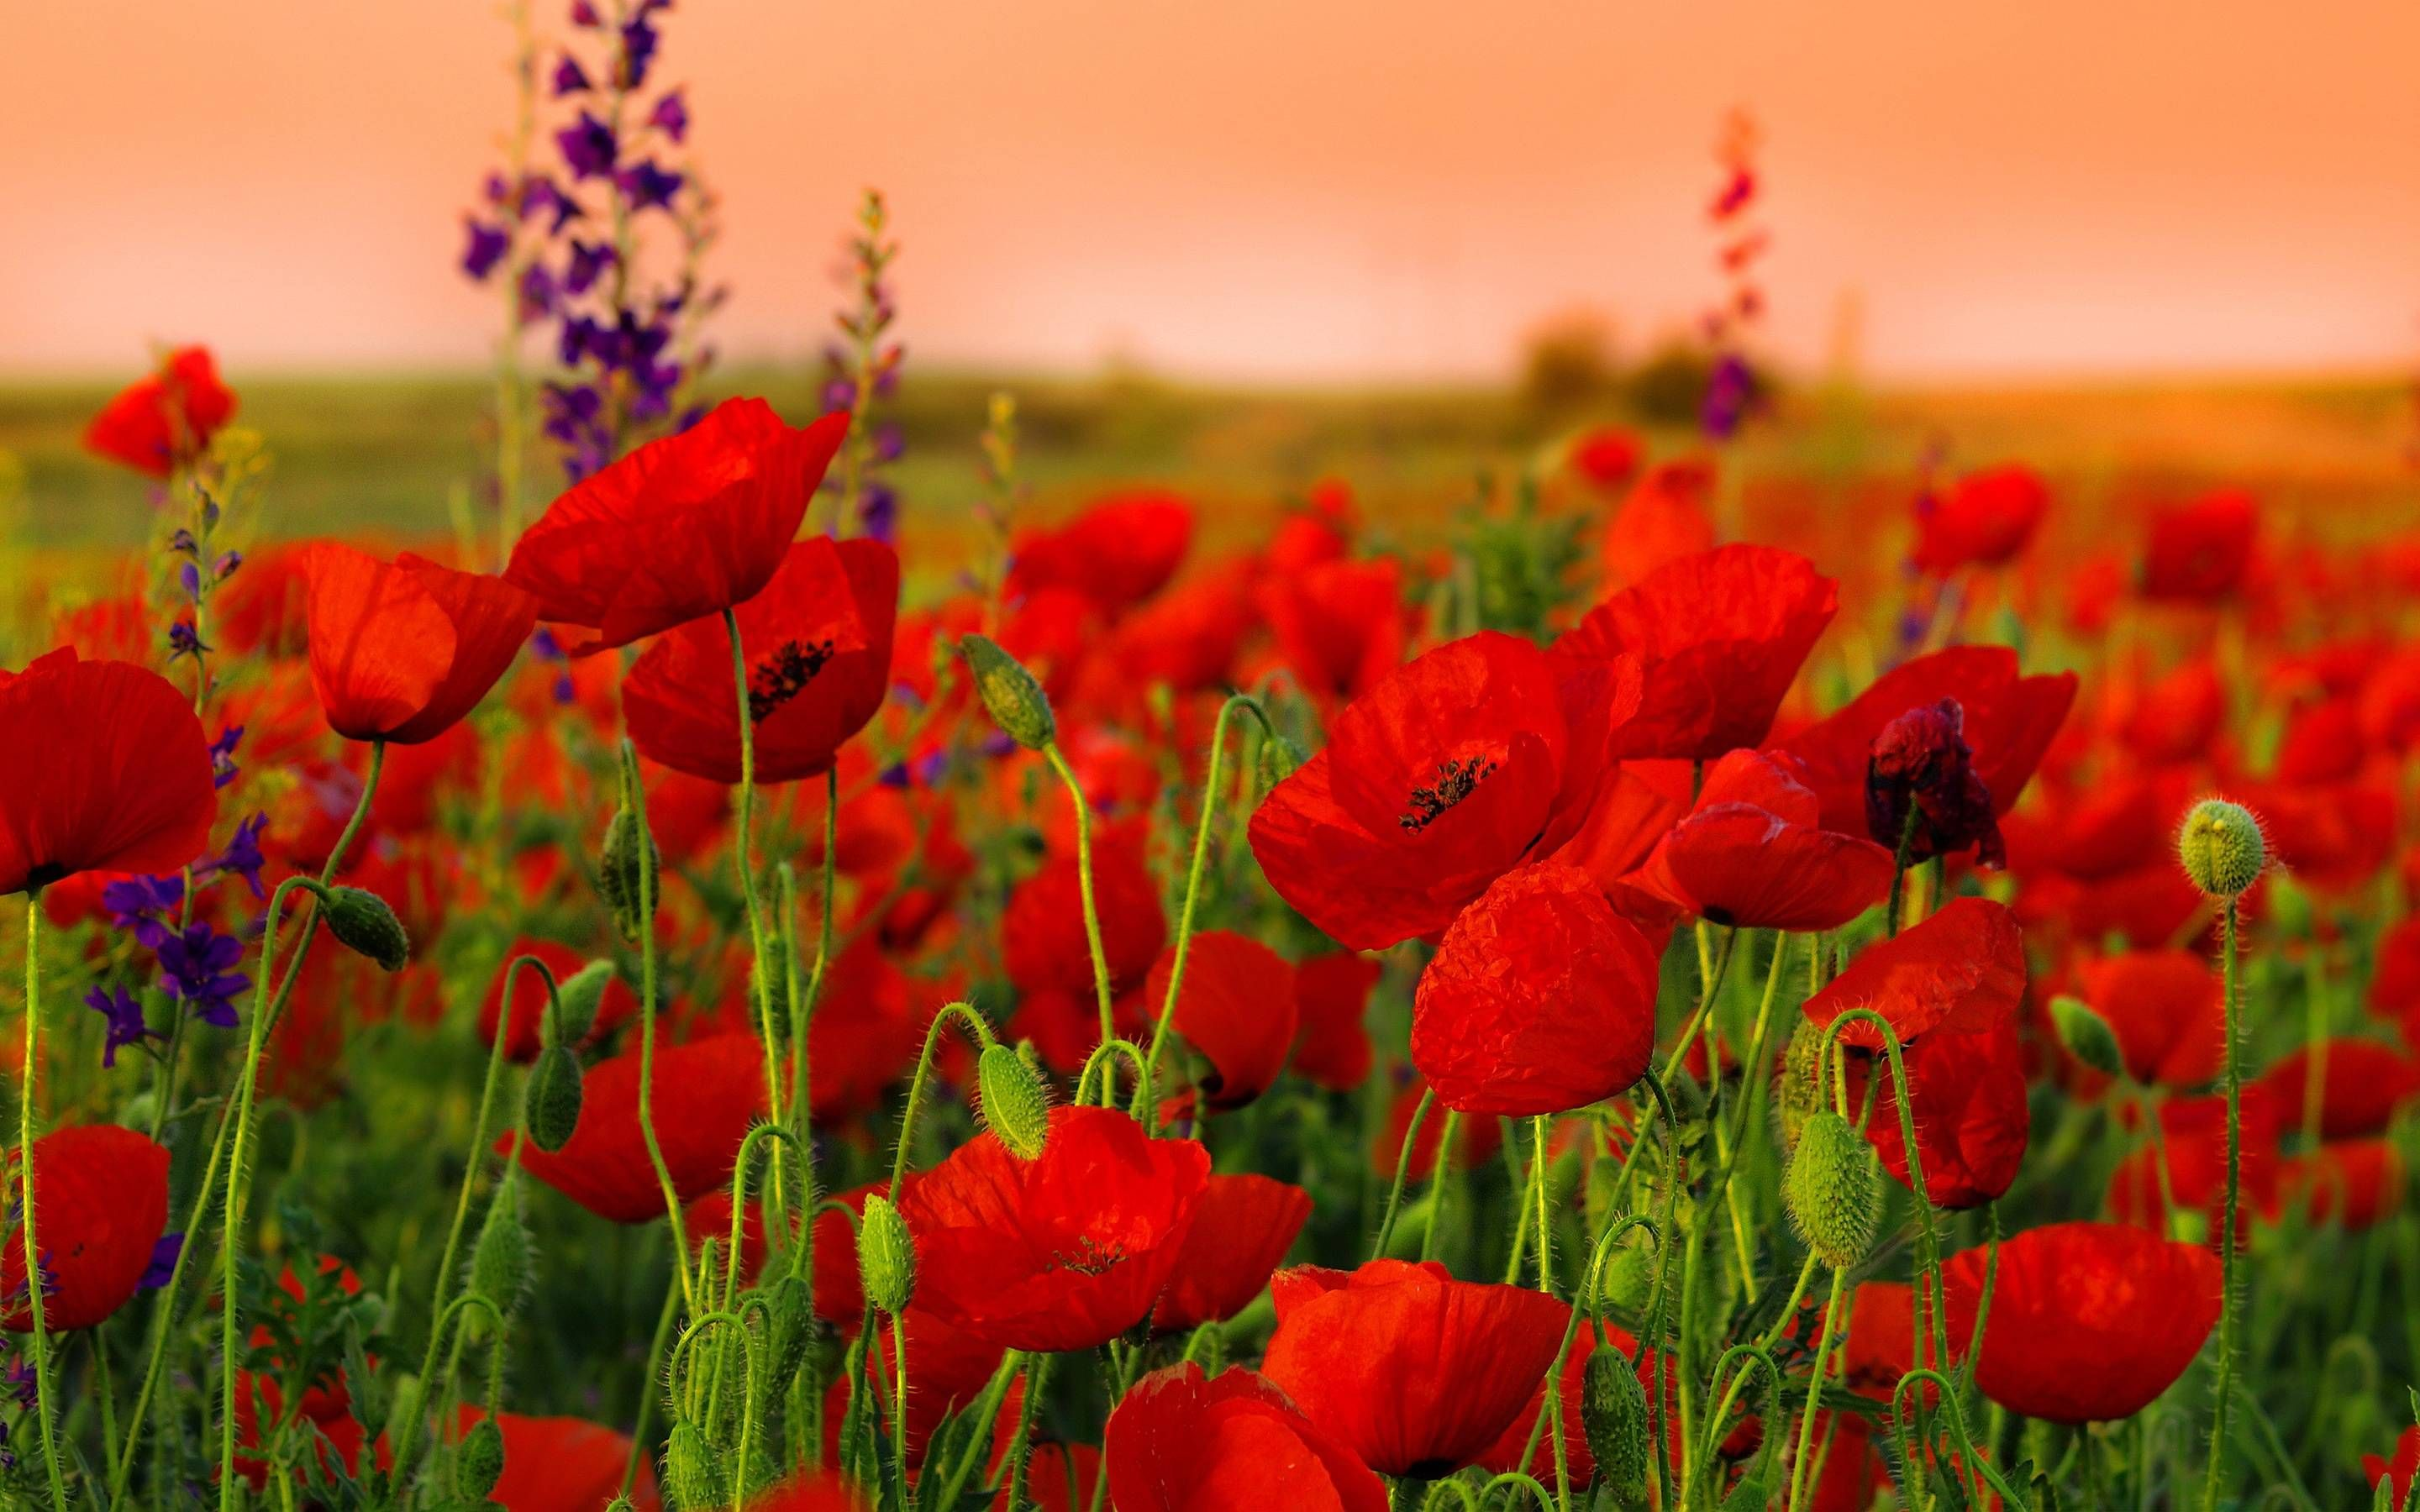 Red Poppy Wallpapers Wallpaper Cave Red poppies